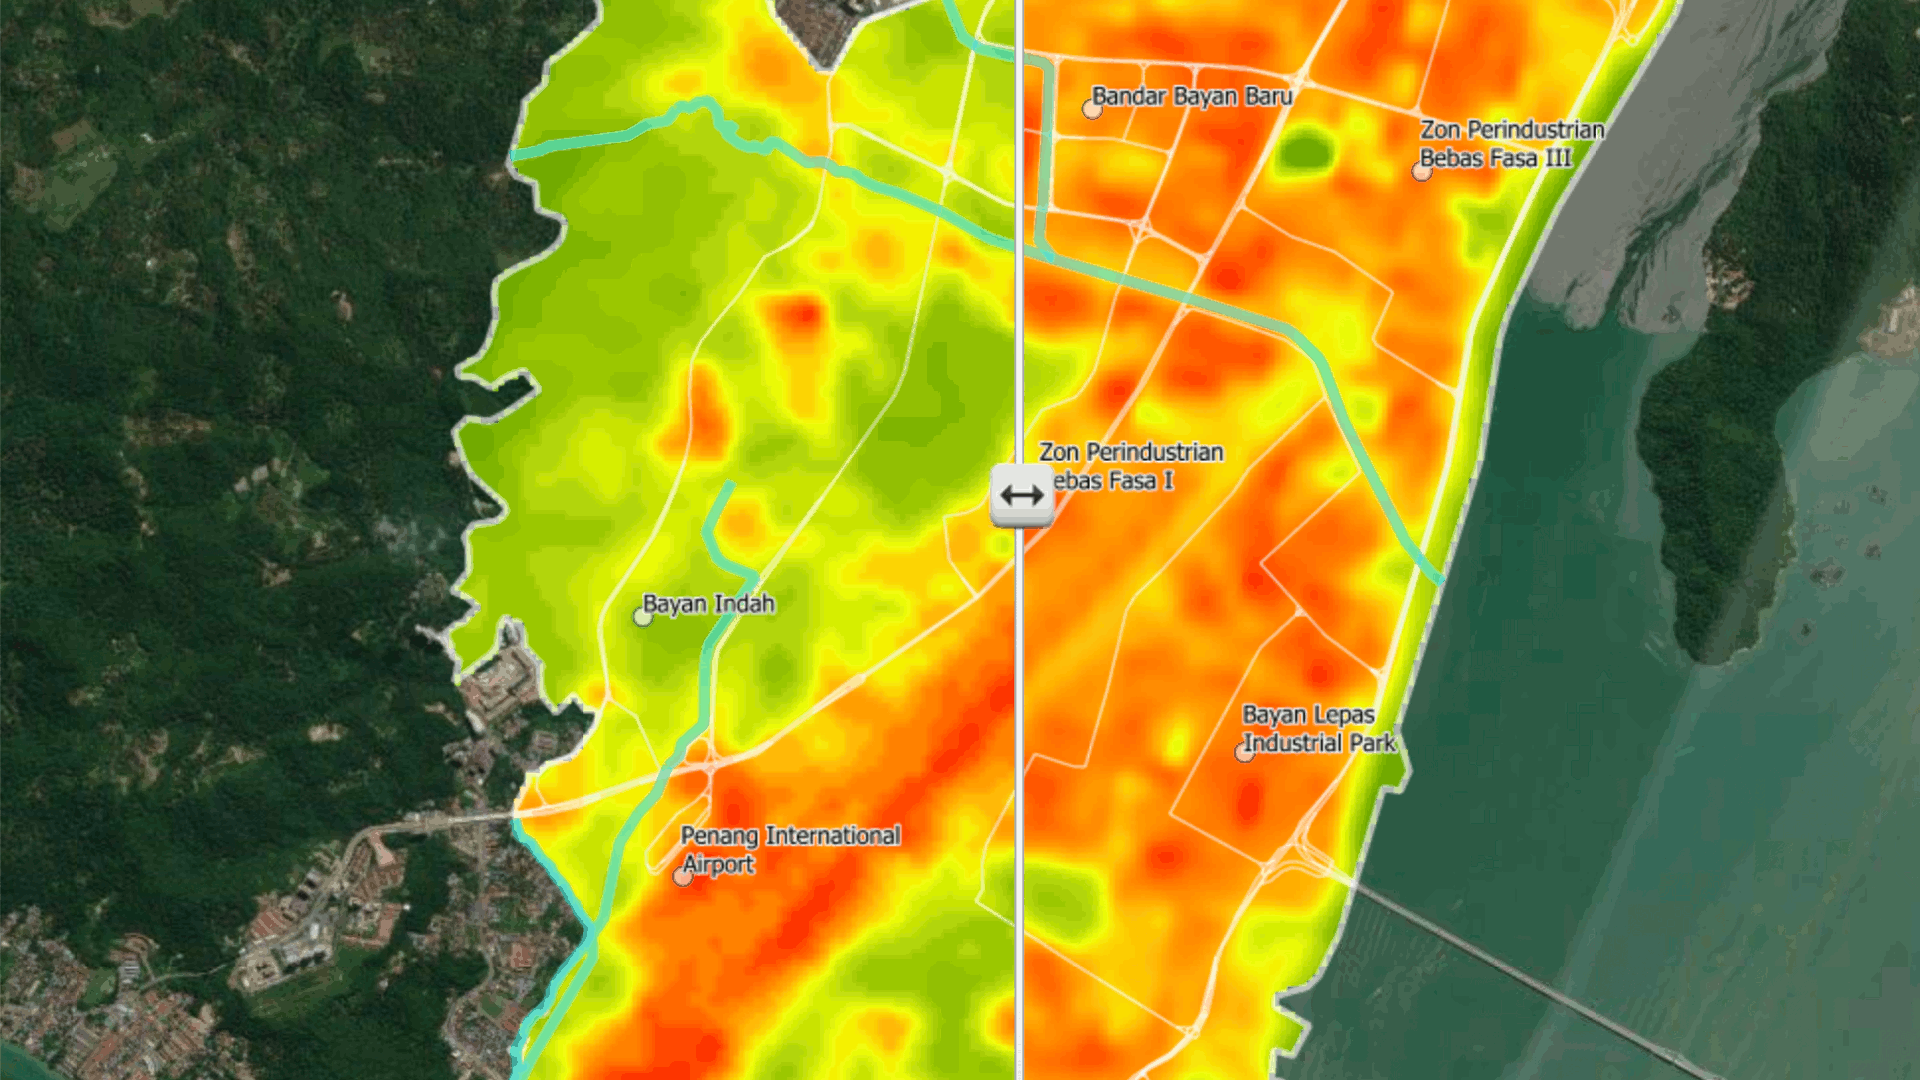 Think City Land Surface Temperature Mapping Shows Malaysian Cities are Getting Hotter